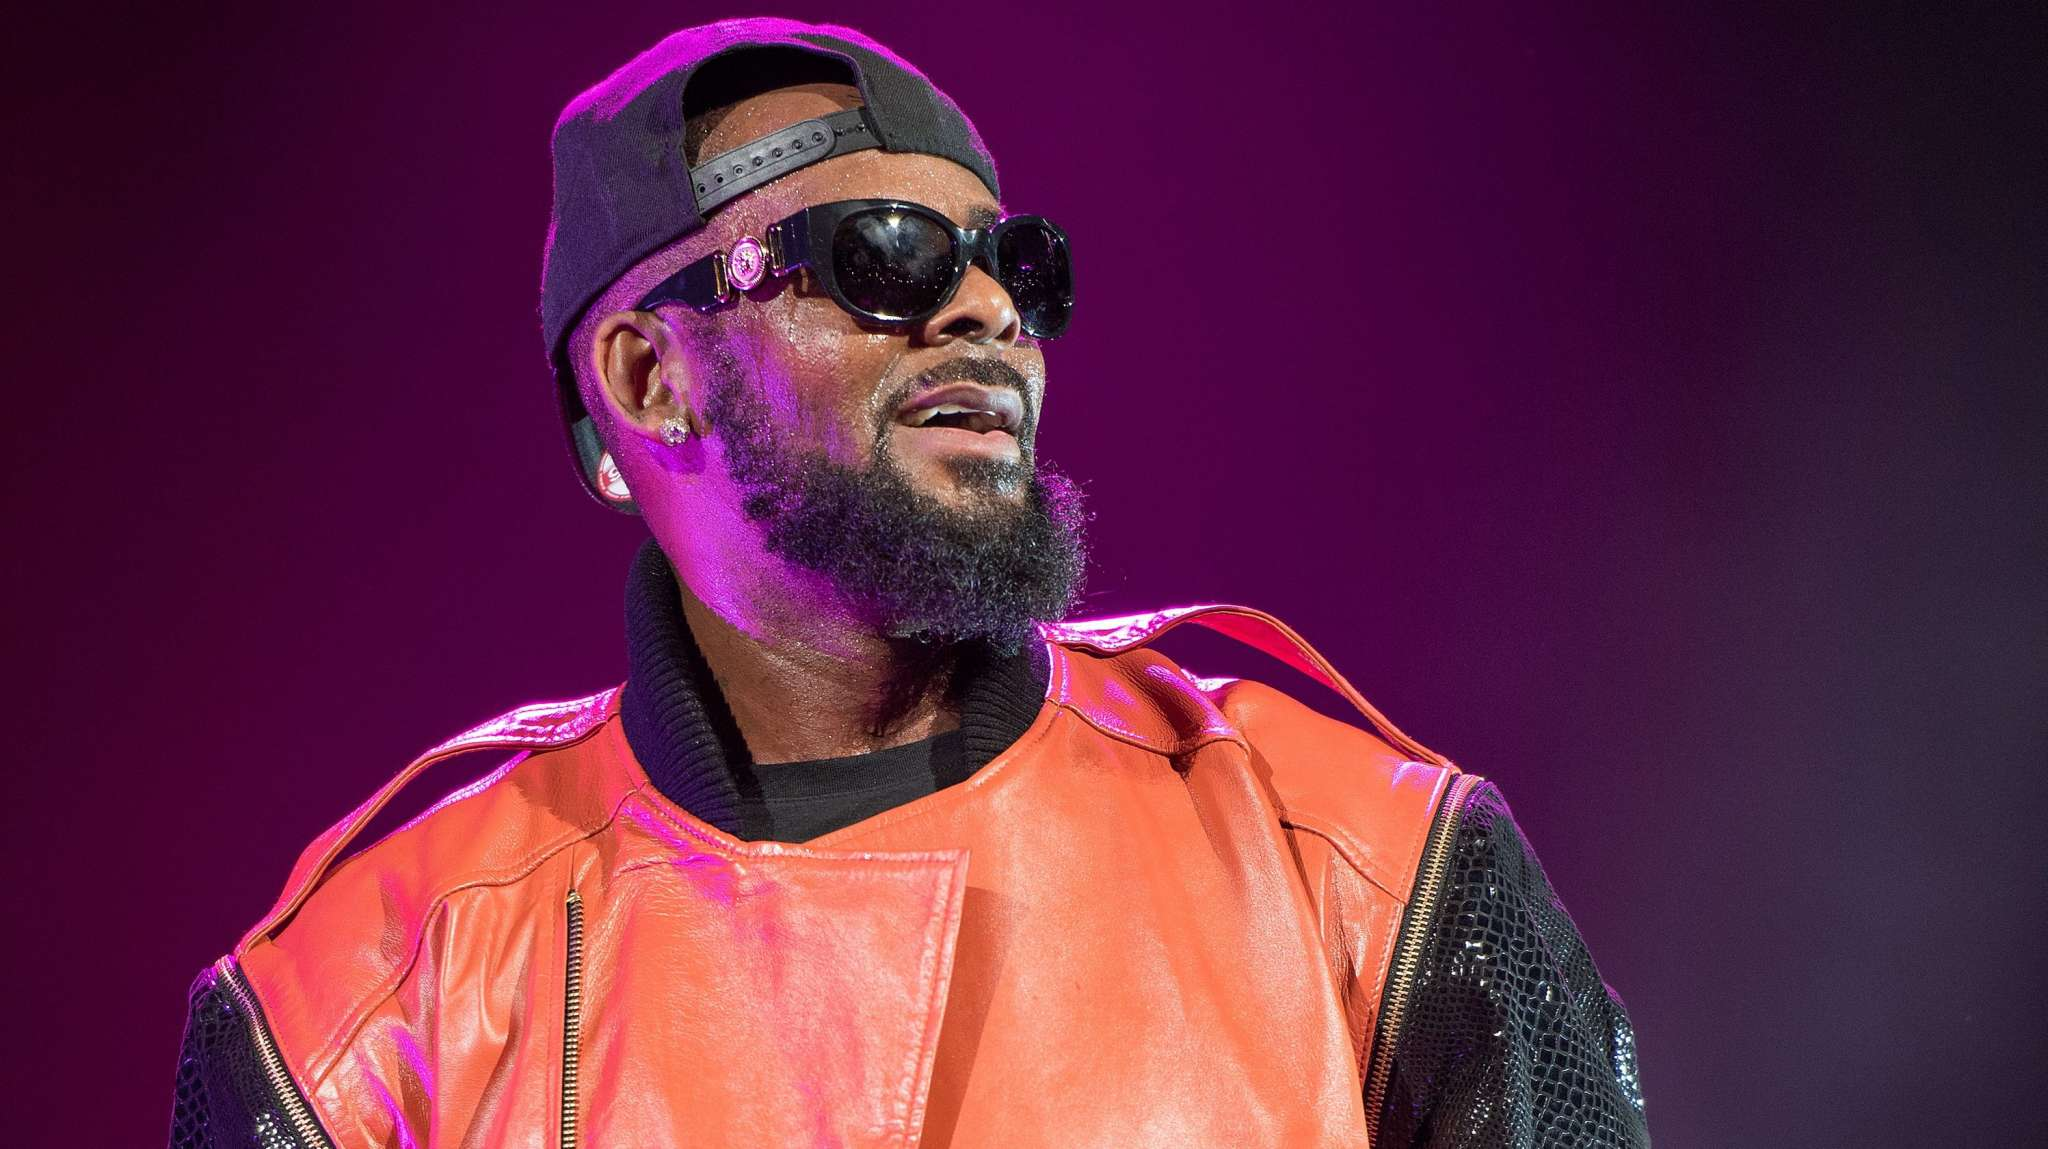 R. Kelly returns to social media for daughter's birthday